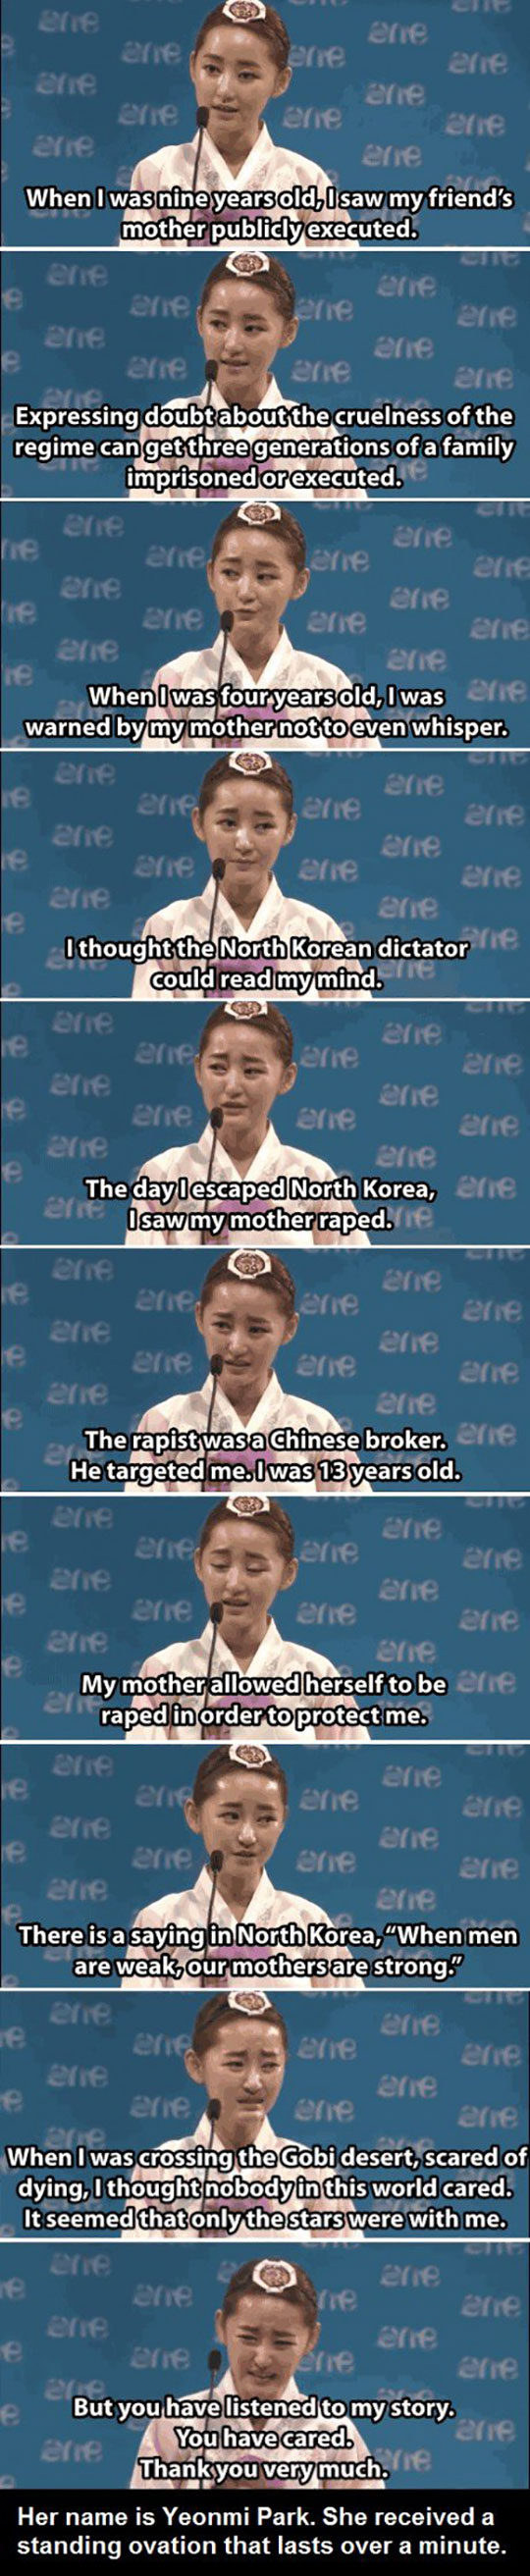 North Korea Is Really Messed Up